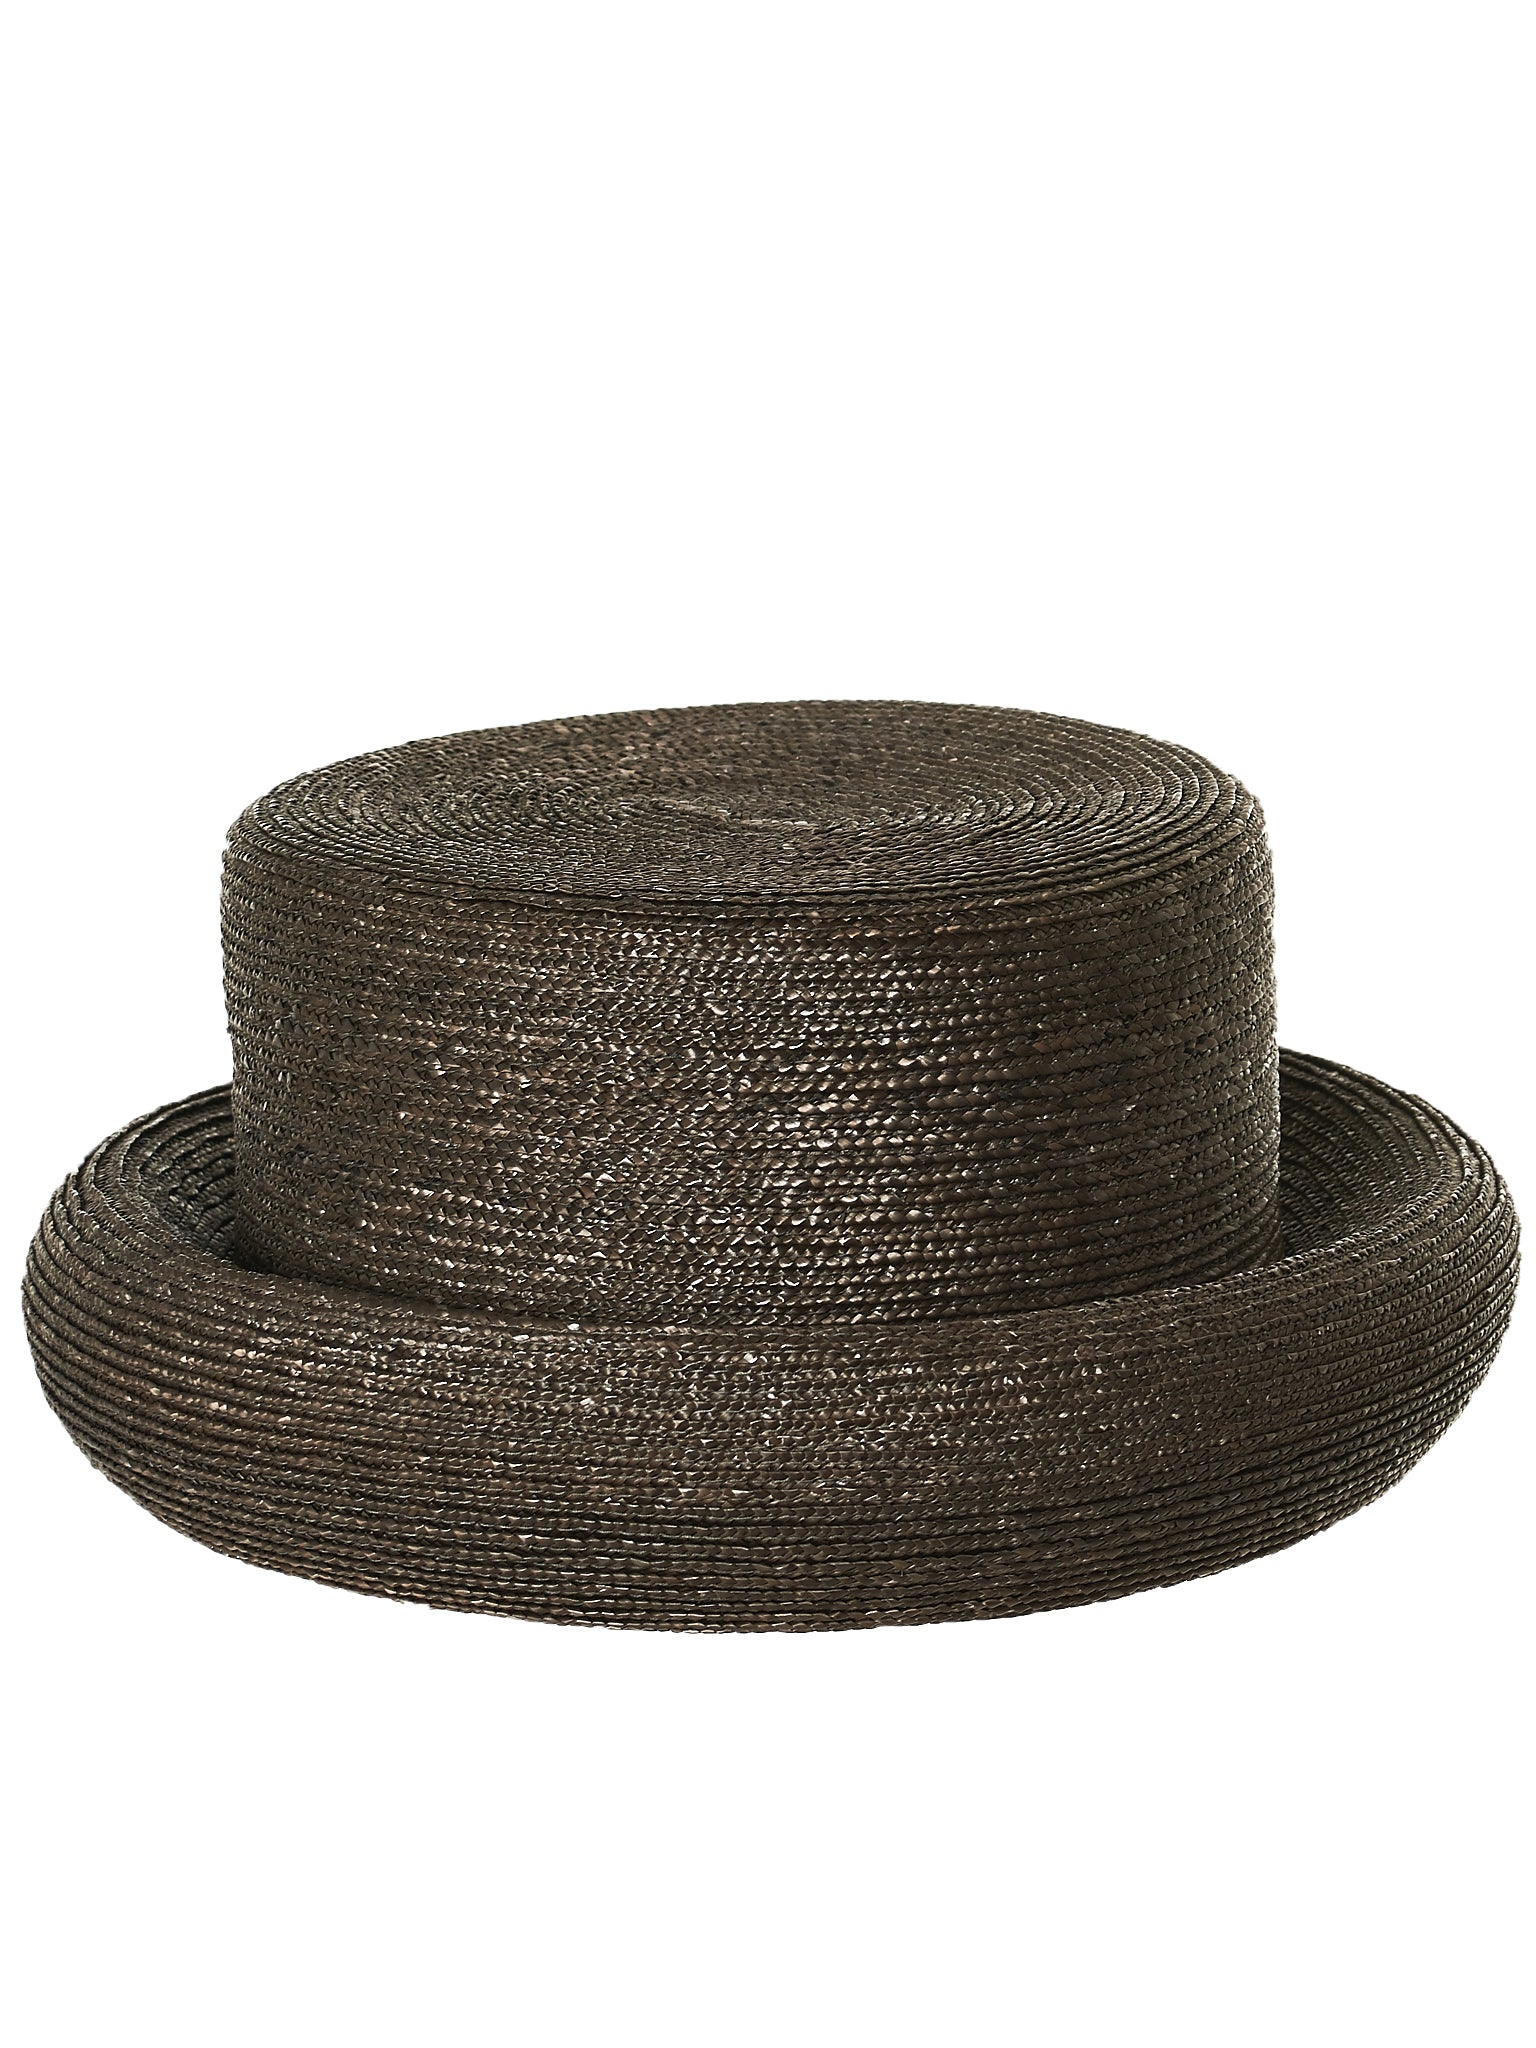 Kamilakva Straw Hat - Hlorenzo Side